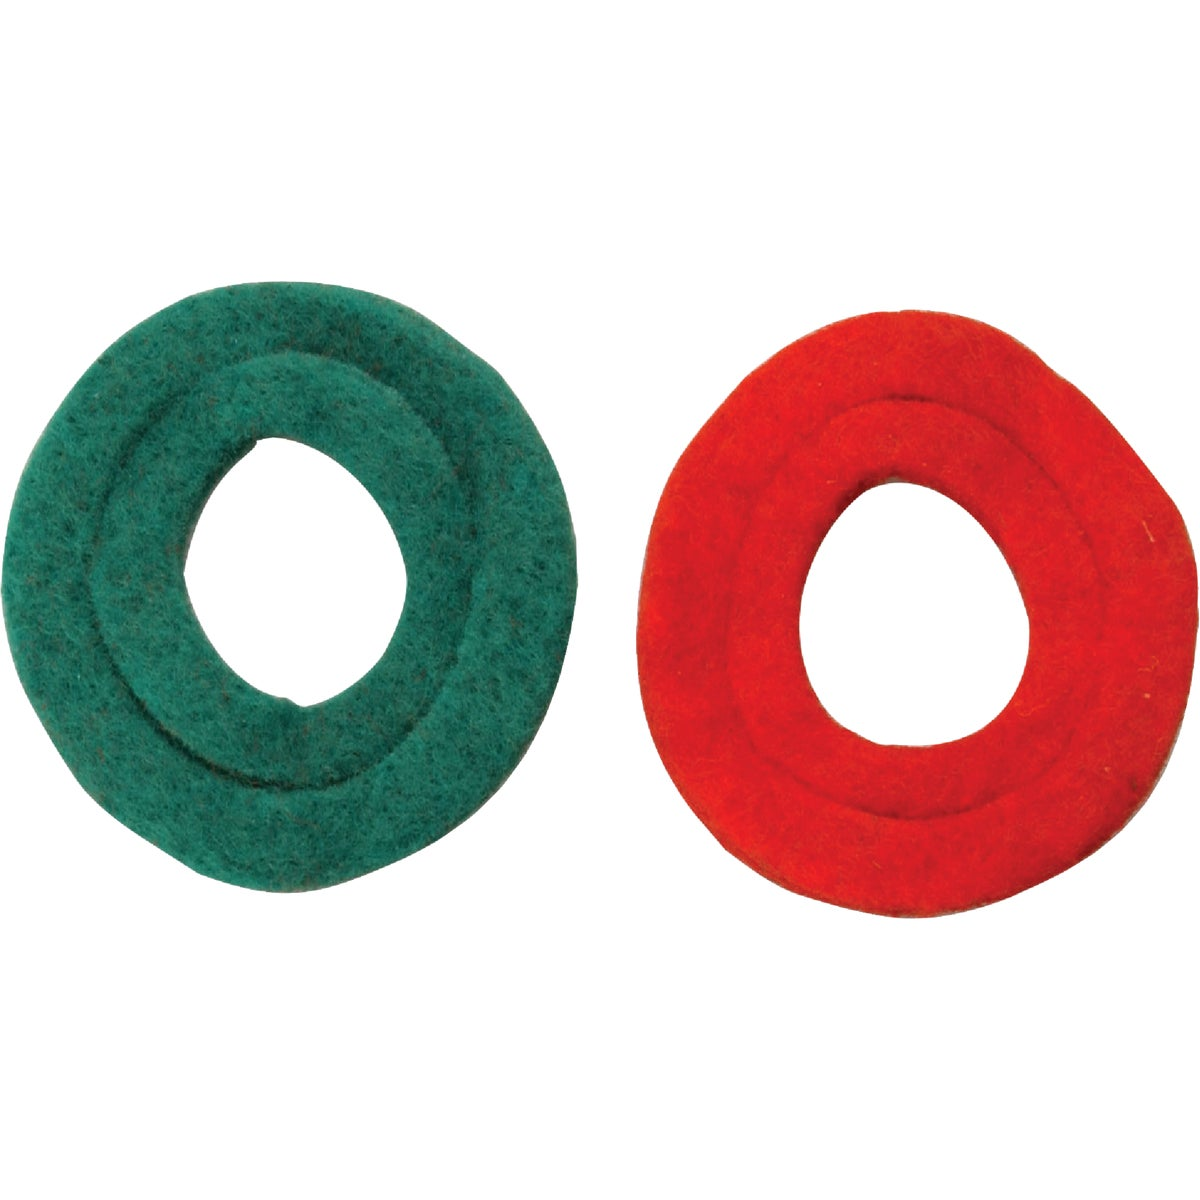 2PK BATTERY WASHERS